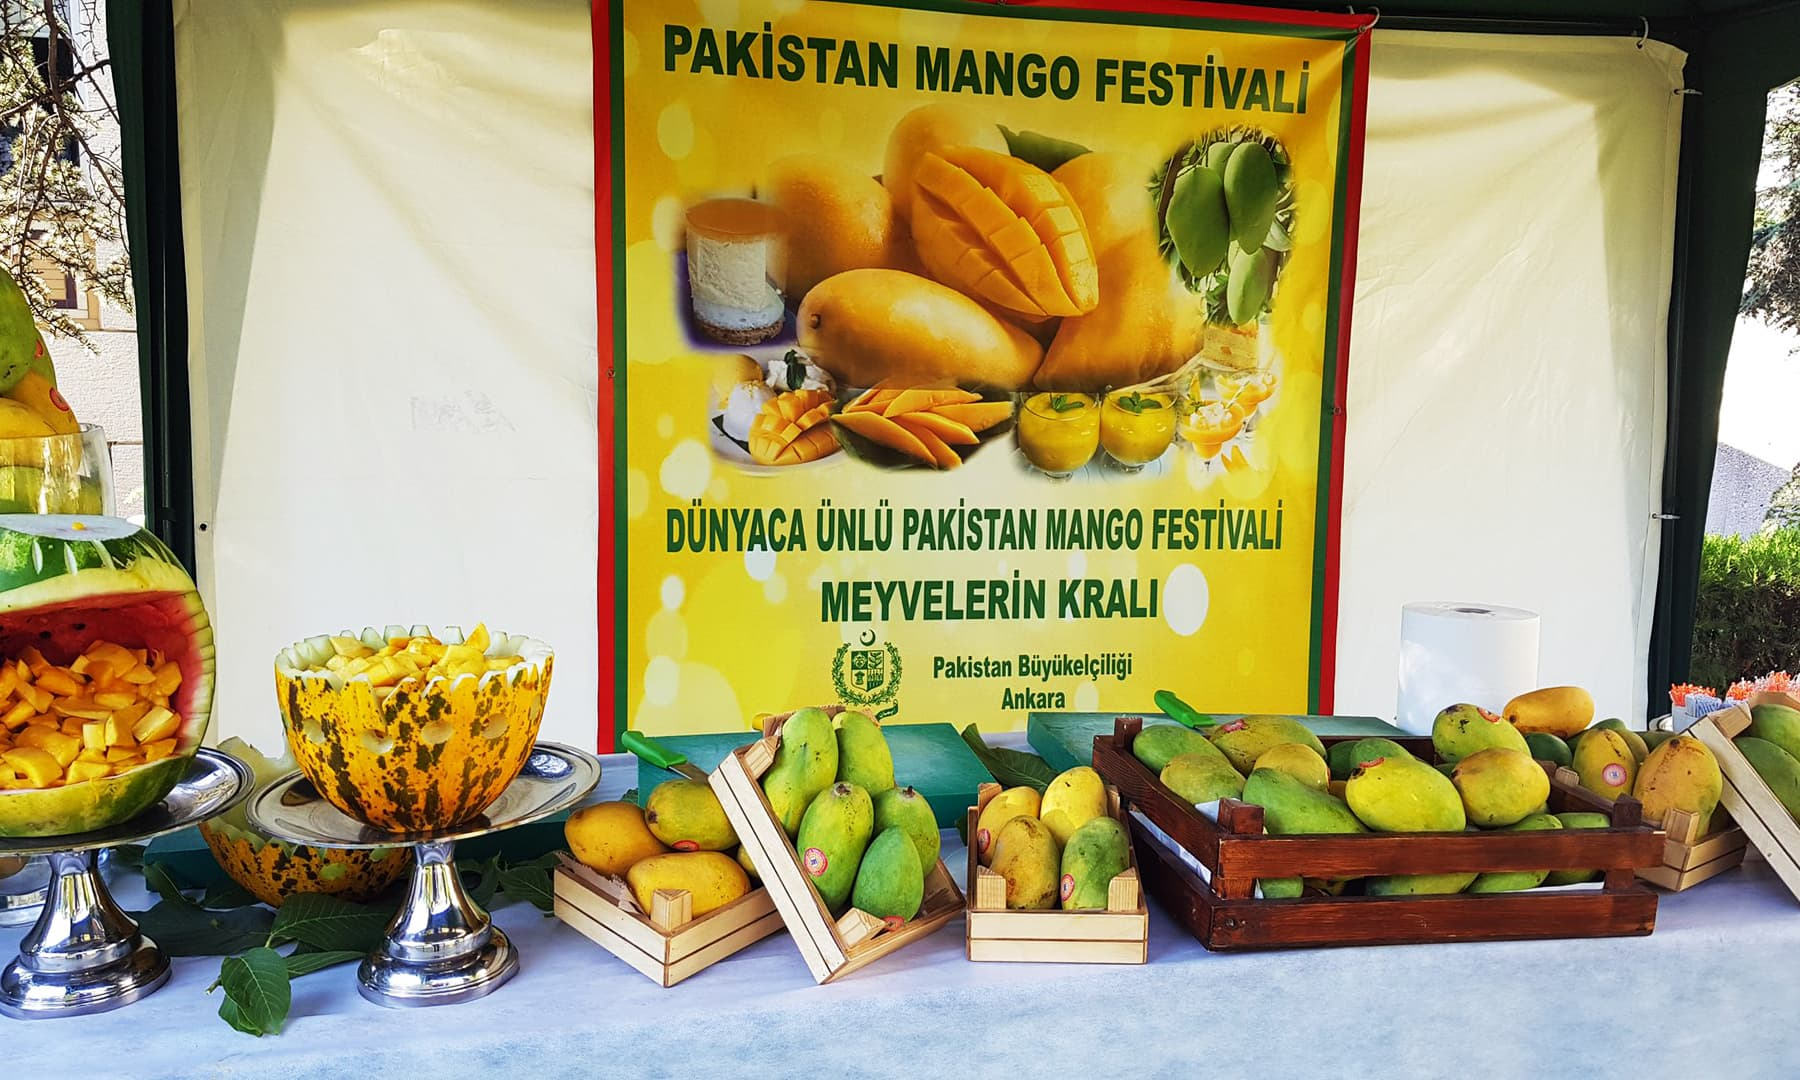 A display table features a variety of Pakistani mangoes.